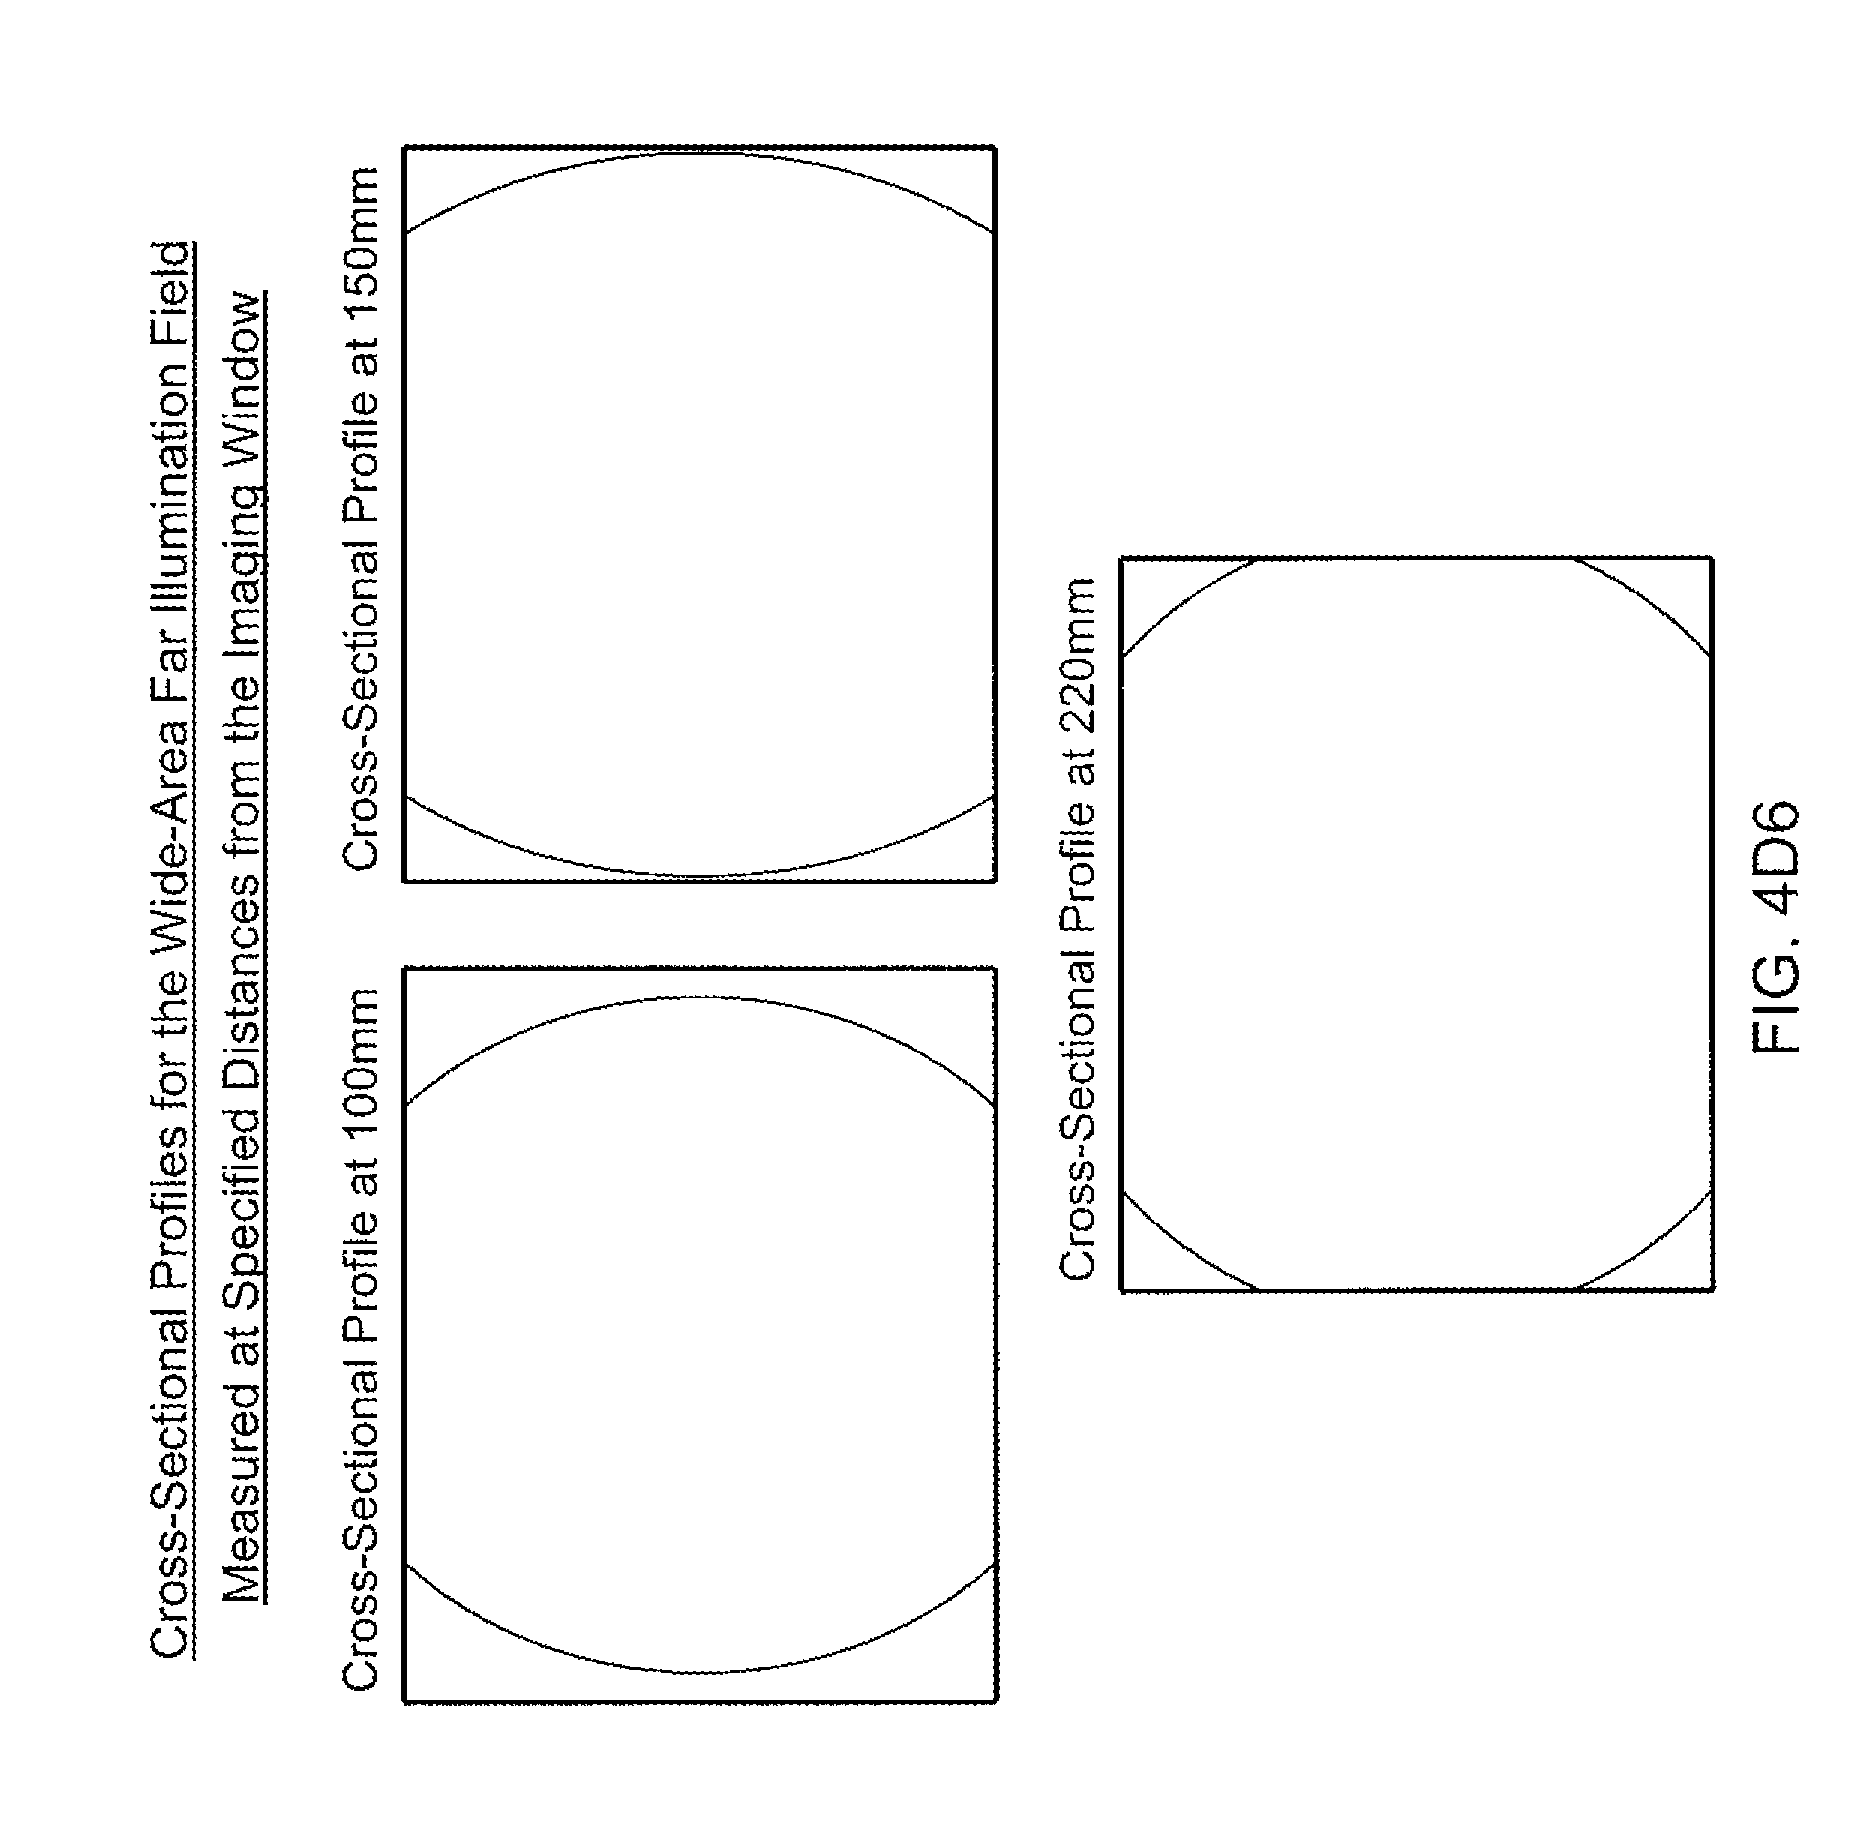 Patent Us 9355288 B2 Diagram Moreover Dip Switch Settings In Addition Cat 5 Crossover Cable Images